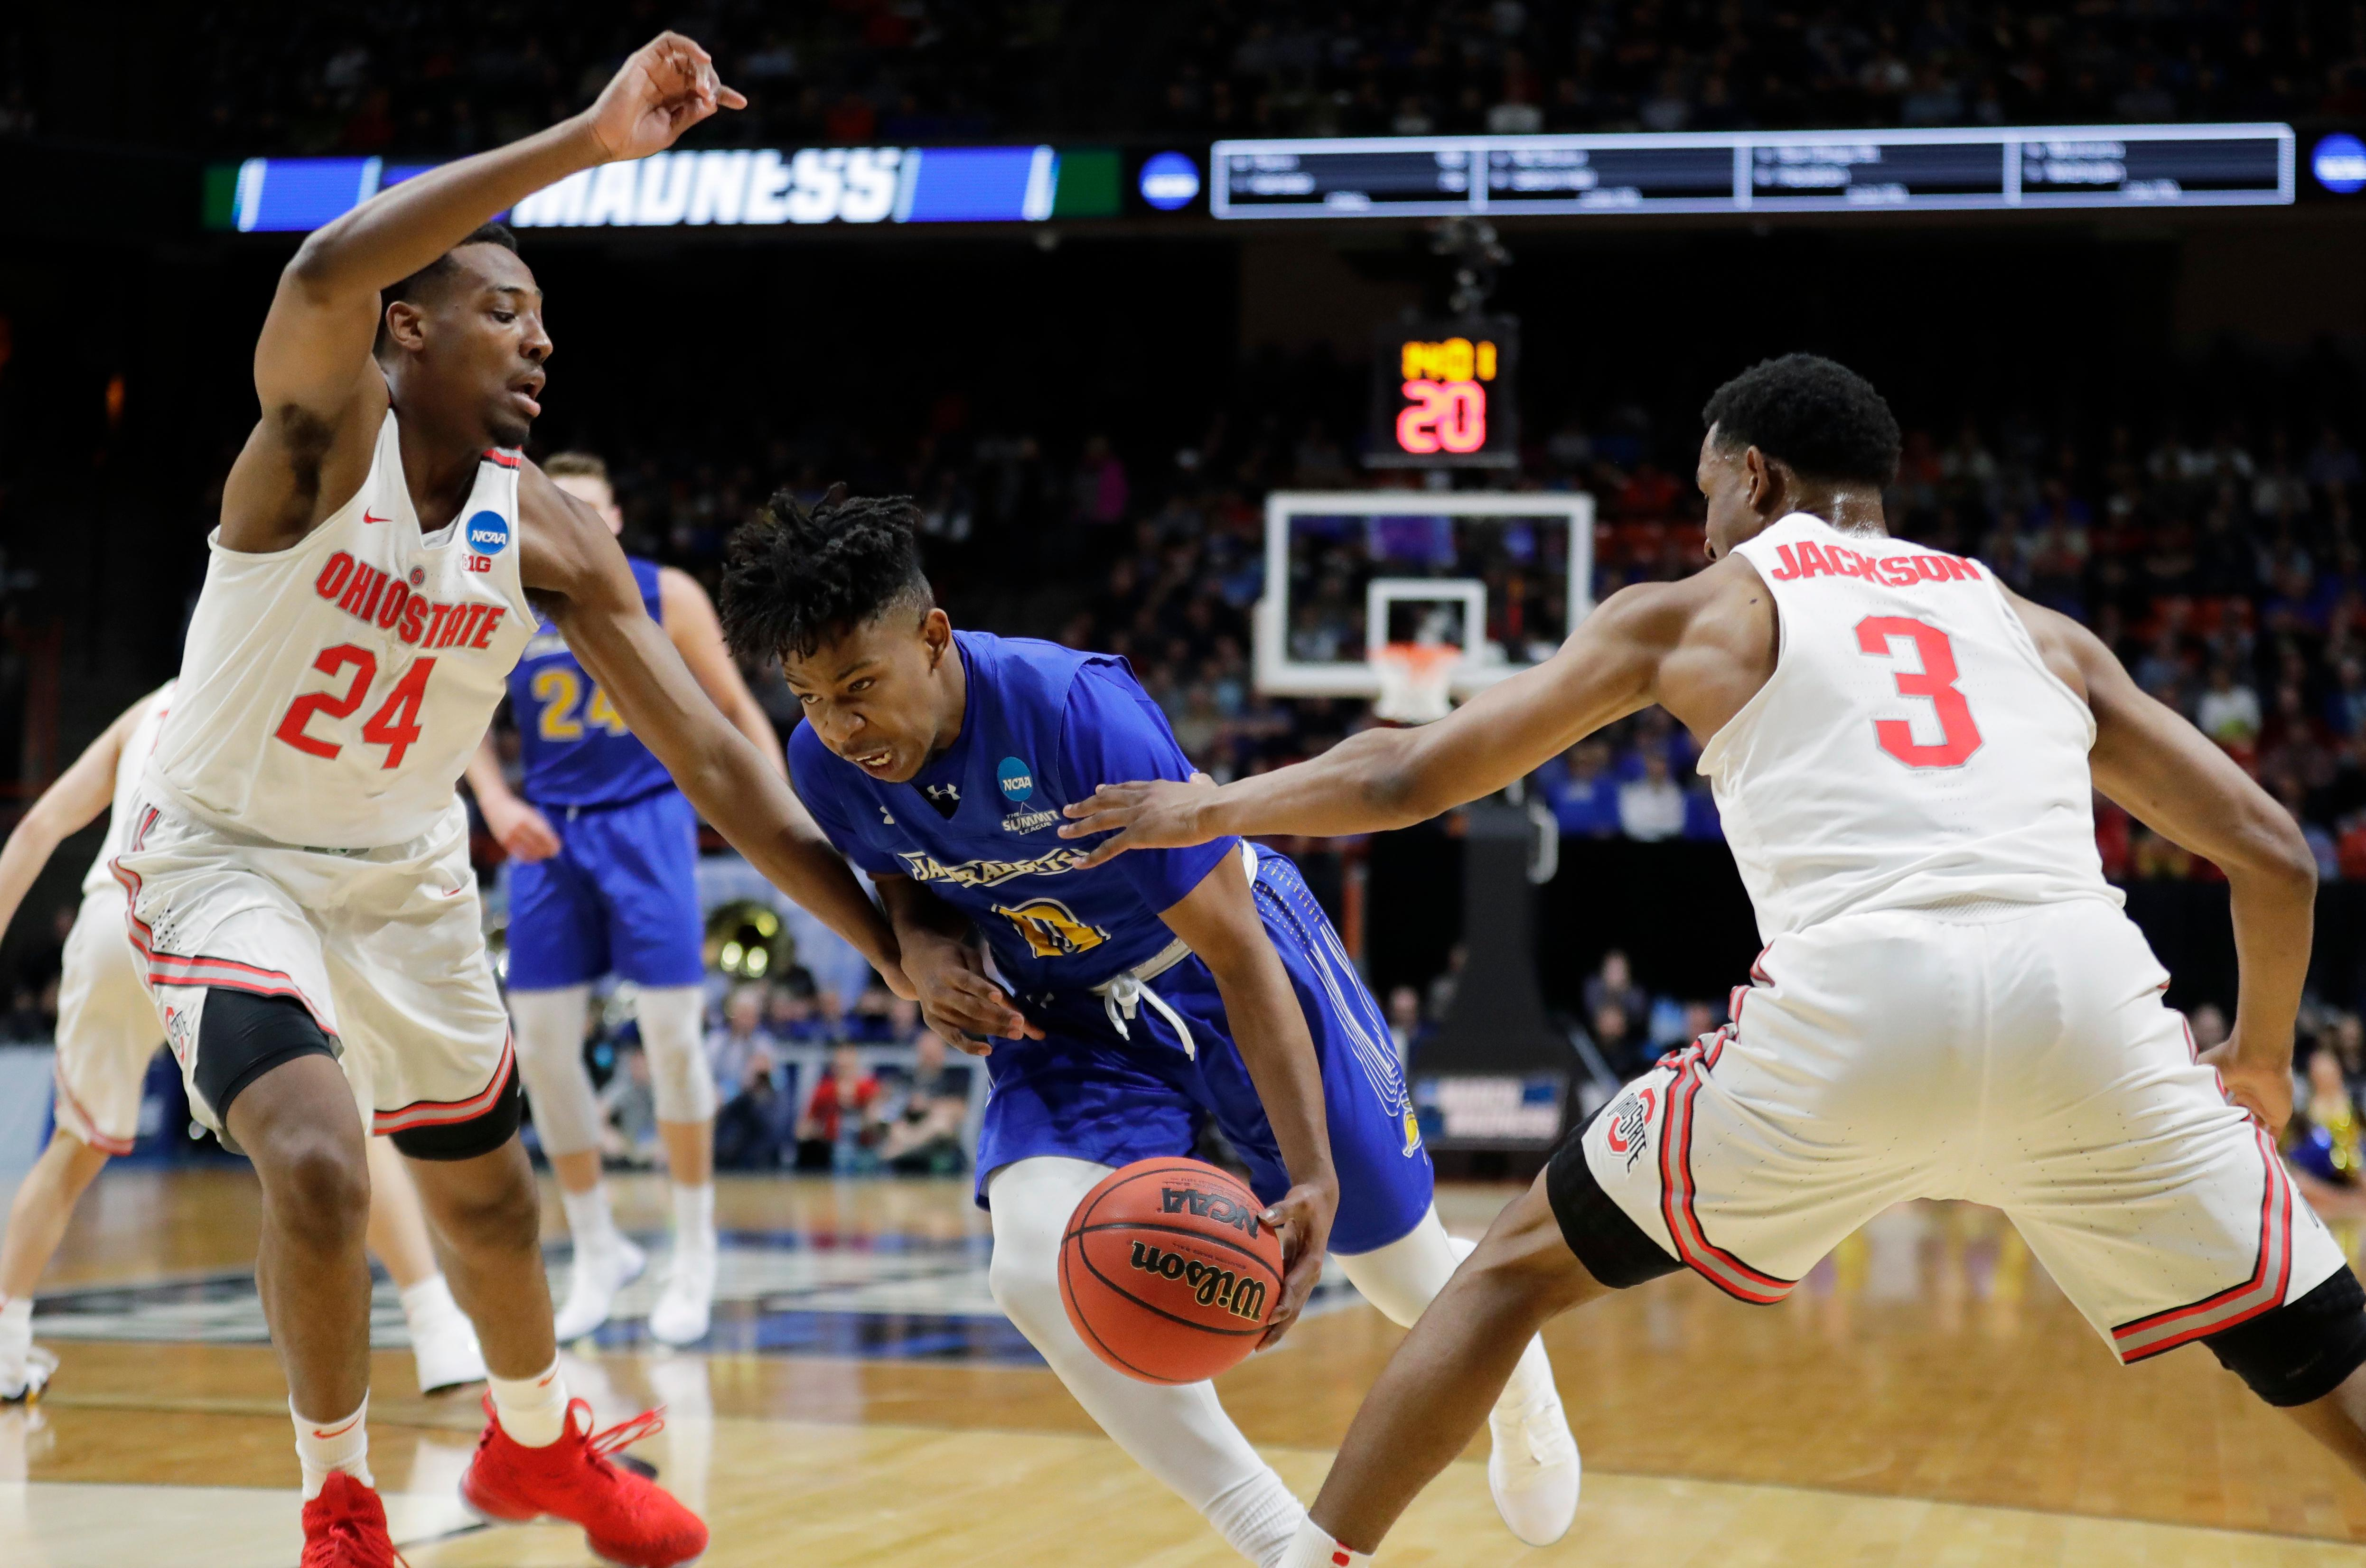 South Dakota State guard Brandon Key, center, drives to the hoop between Ohio State forward Andre Wesson (24) and guard C.J. Jackson (3) during the first half of a first-round game in the NCAA college basketball tournament, Thursday, March 15, 2018, in Boise, Idaho. (AP Photo/Ted S. Warren)